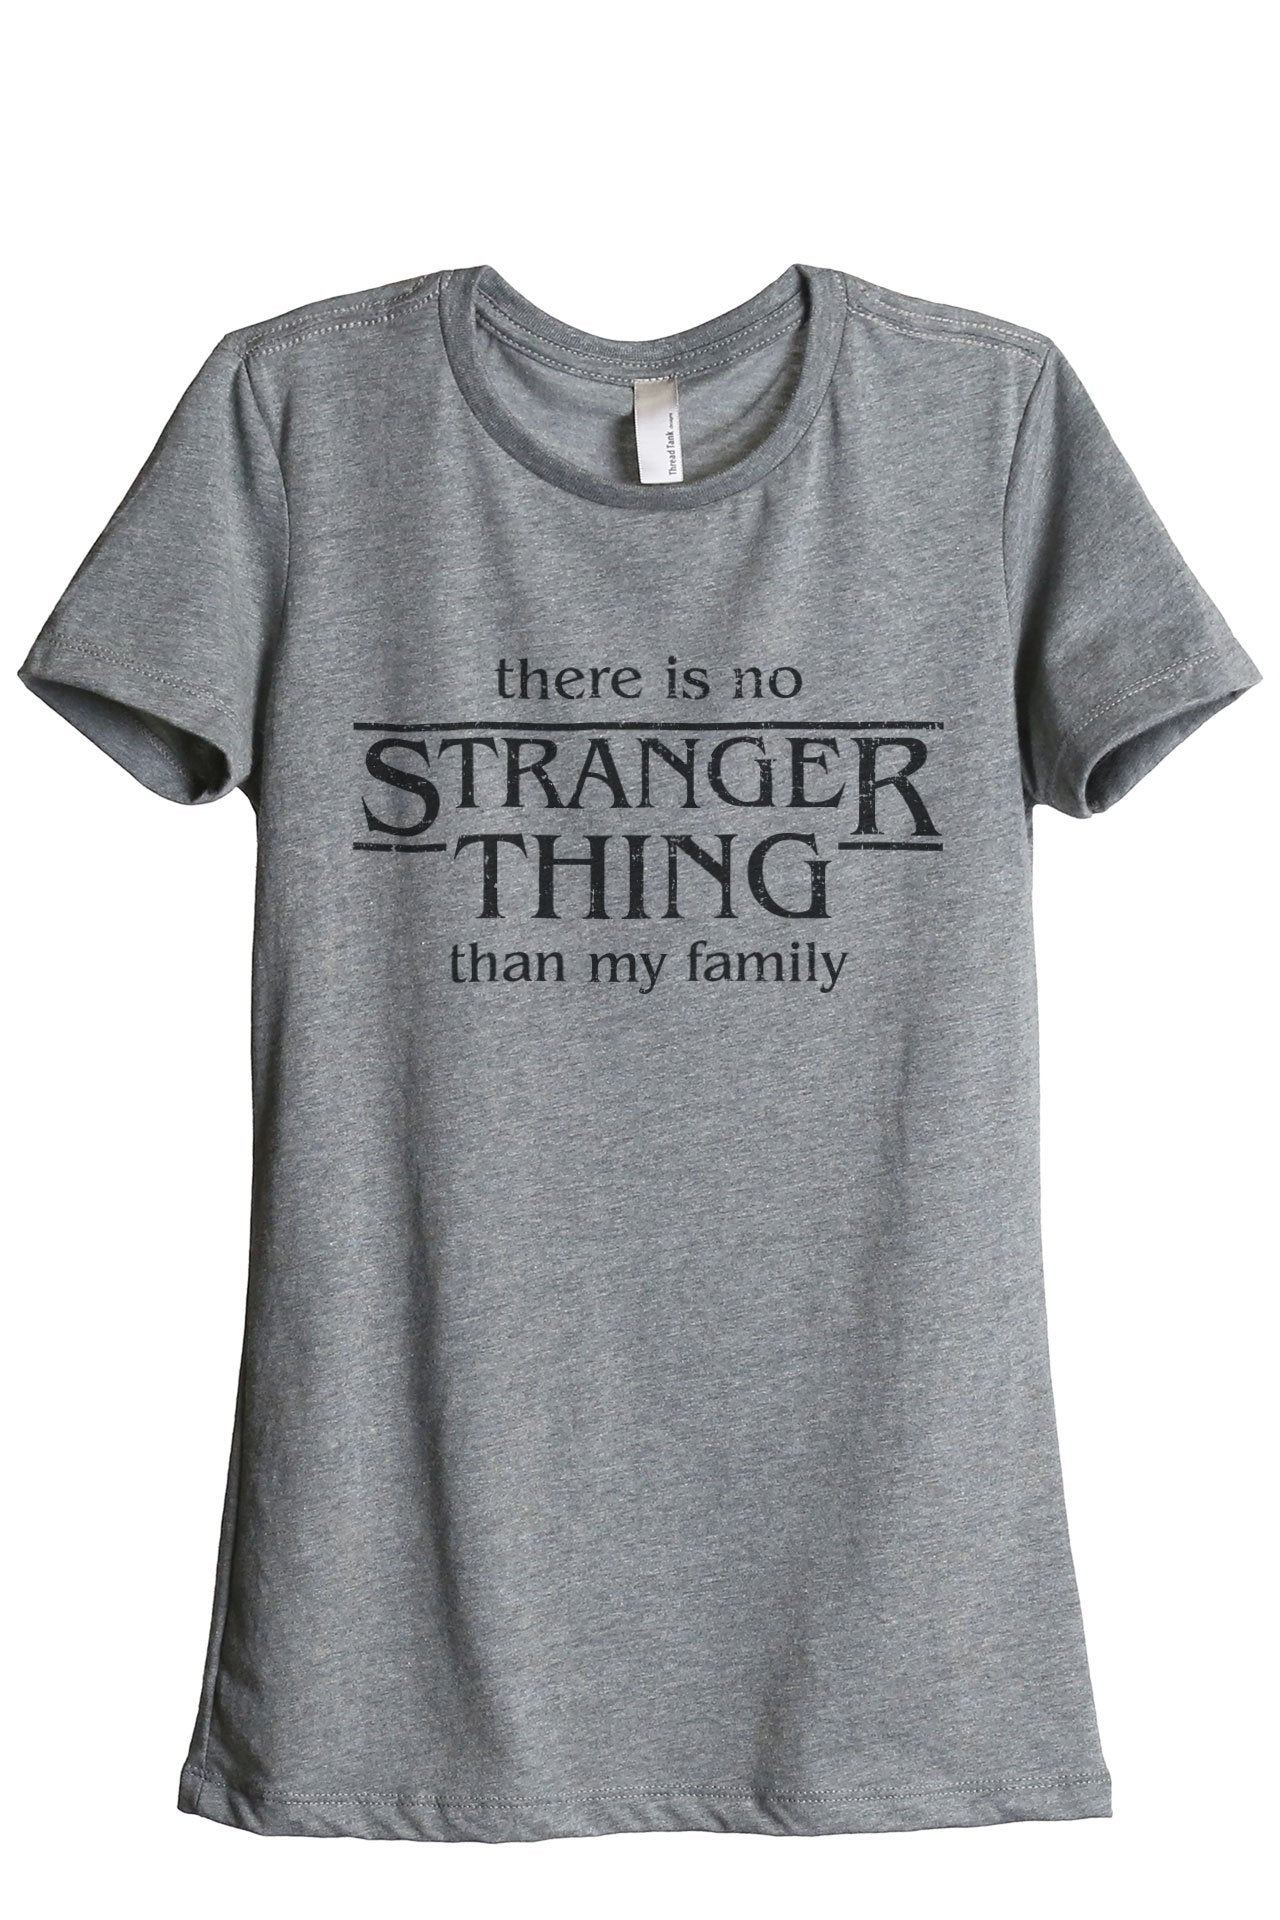 There Is No Stranger Thing Than My Family Women Heather Grey Relaxed Crew T-Shirt Tee Top